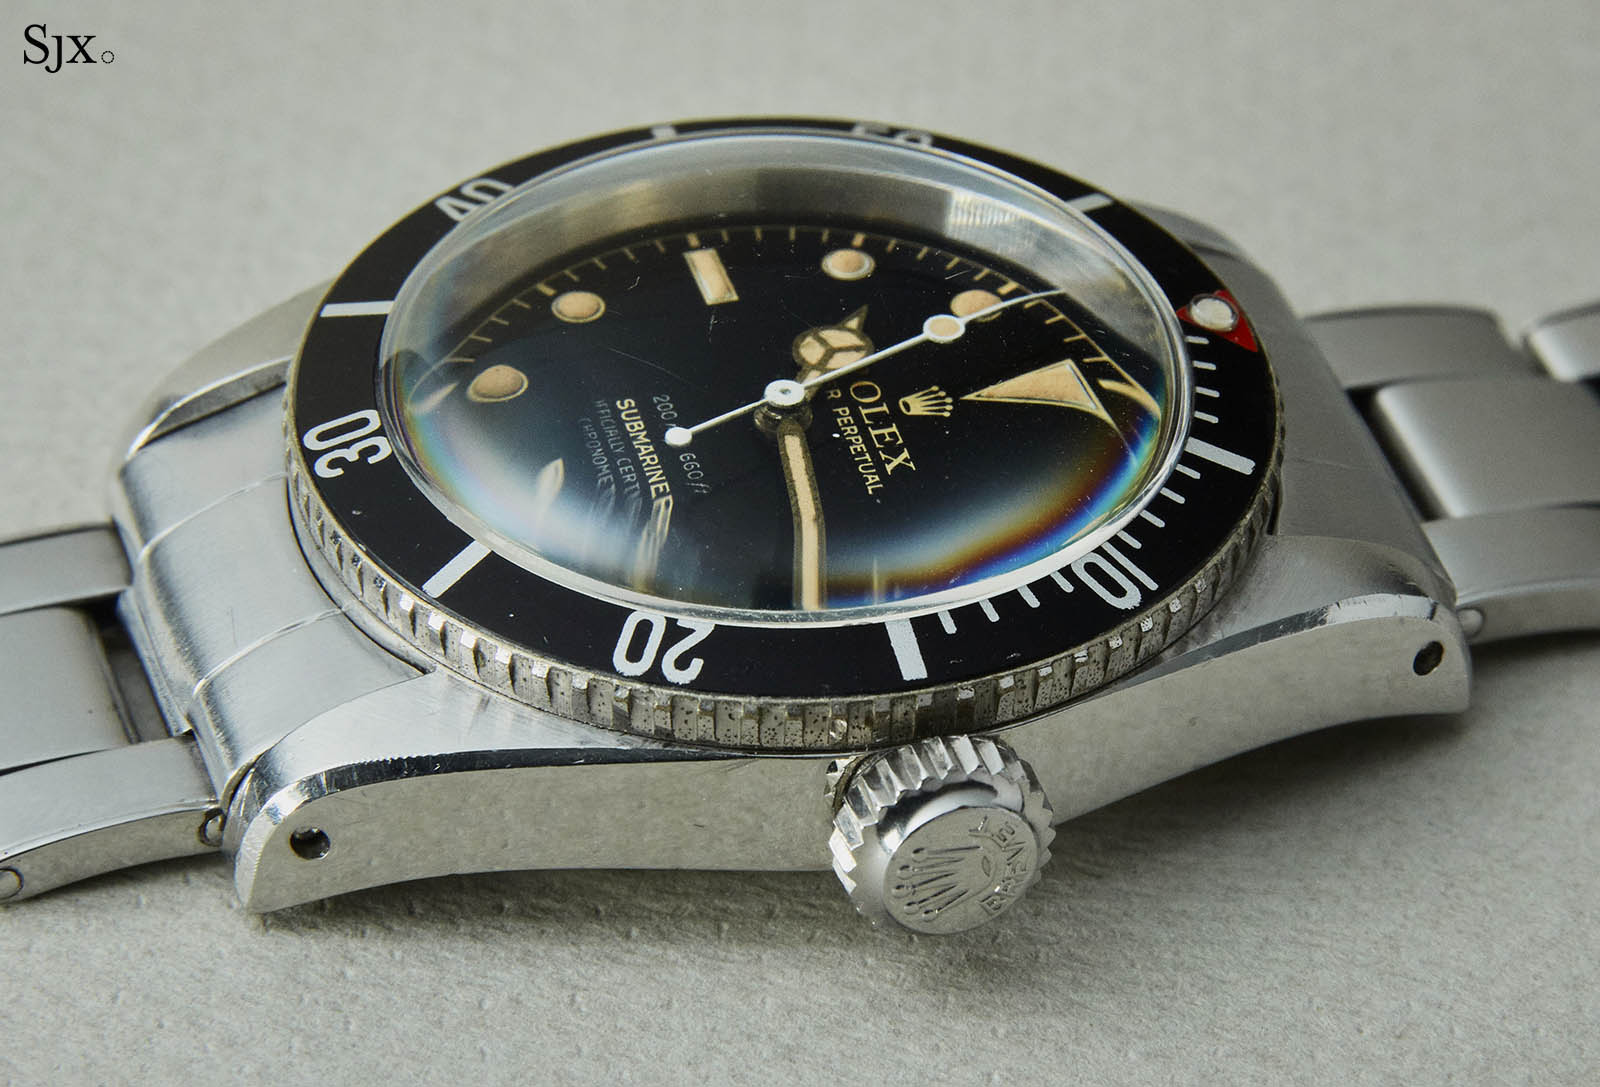 Rolex Submariner ref. 6538 Big Crown 4